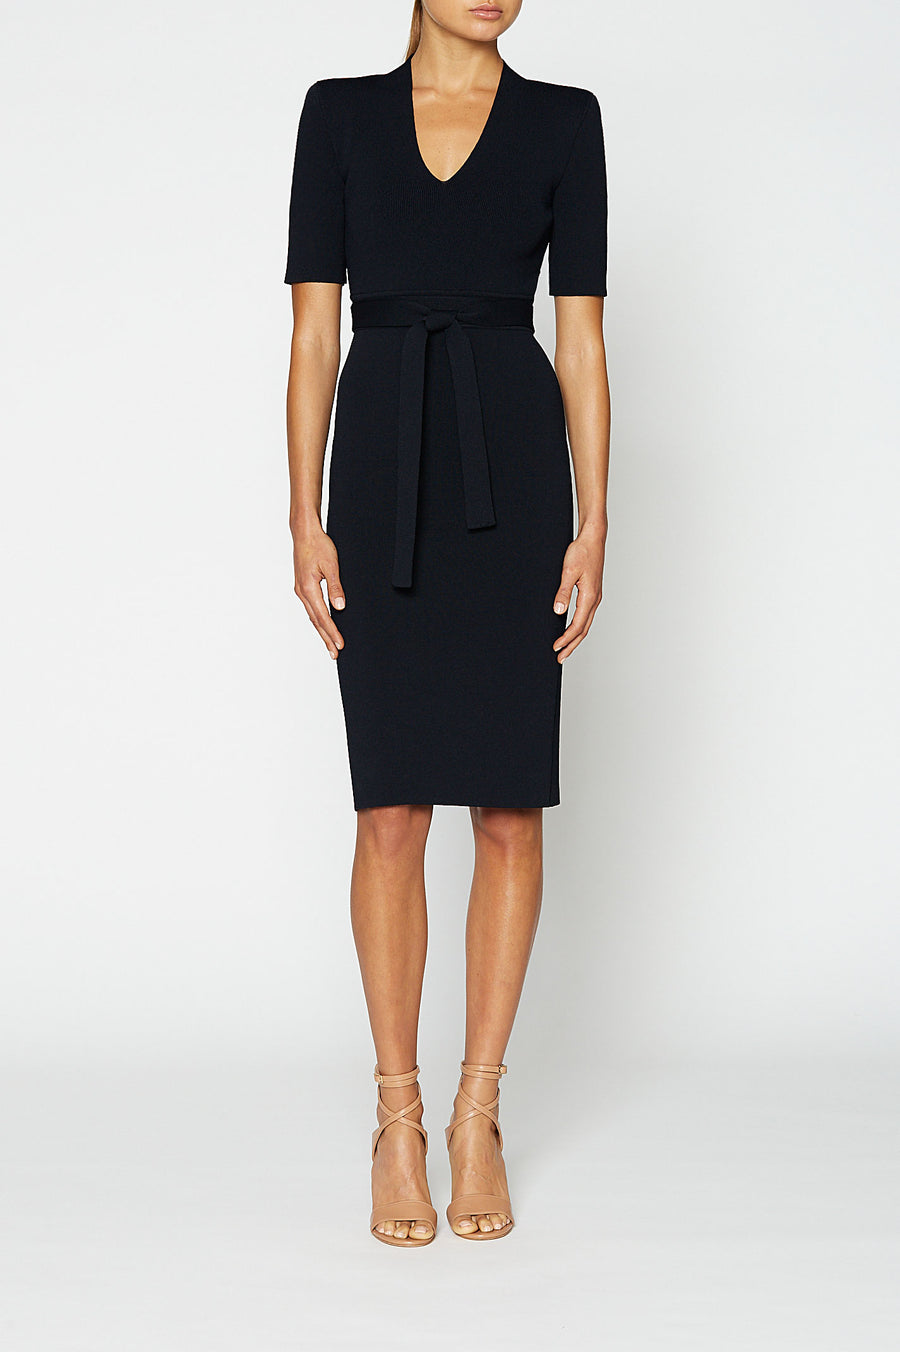 Crepe Knit V Neck Dress, fitted silhouette, waist seam belt, mid length sleeve, key hole V-neckline, falls just below the knee, Color Navy